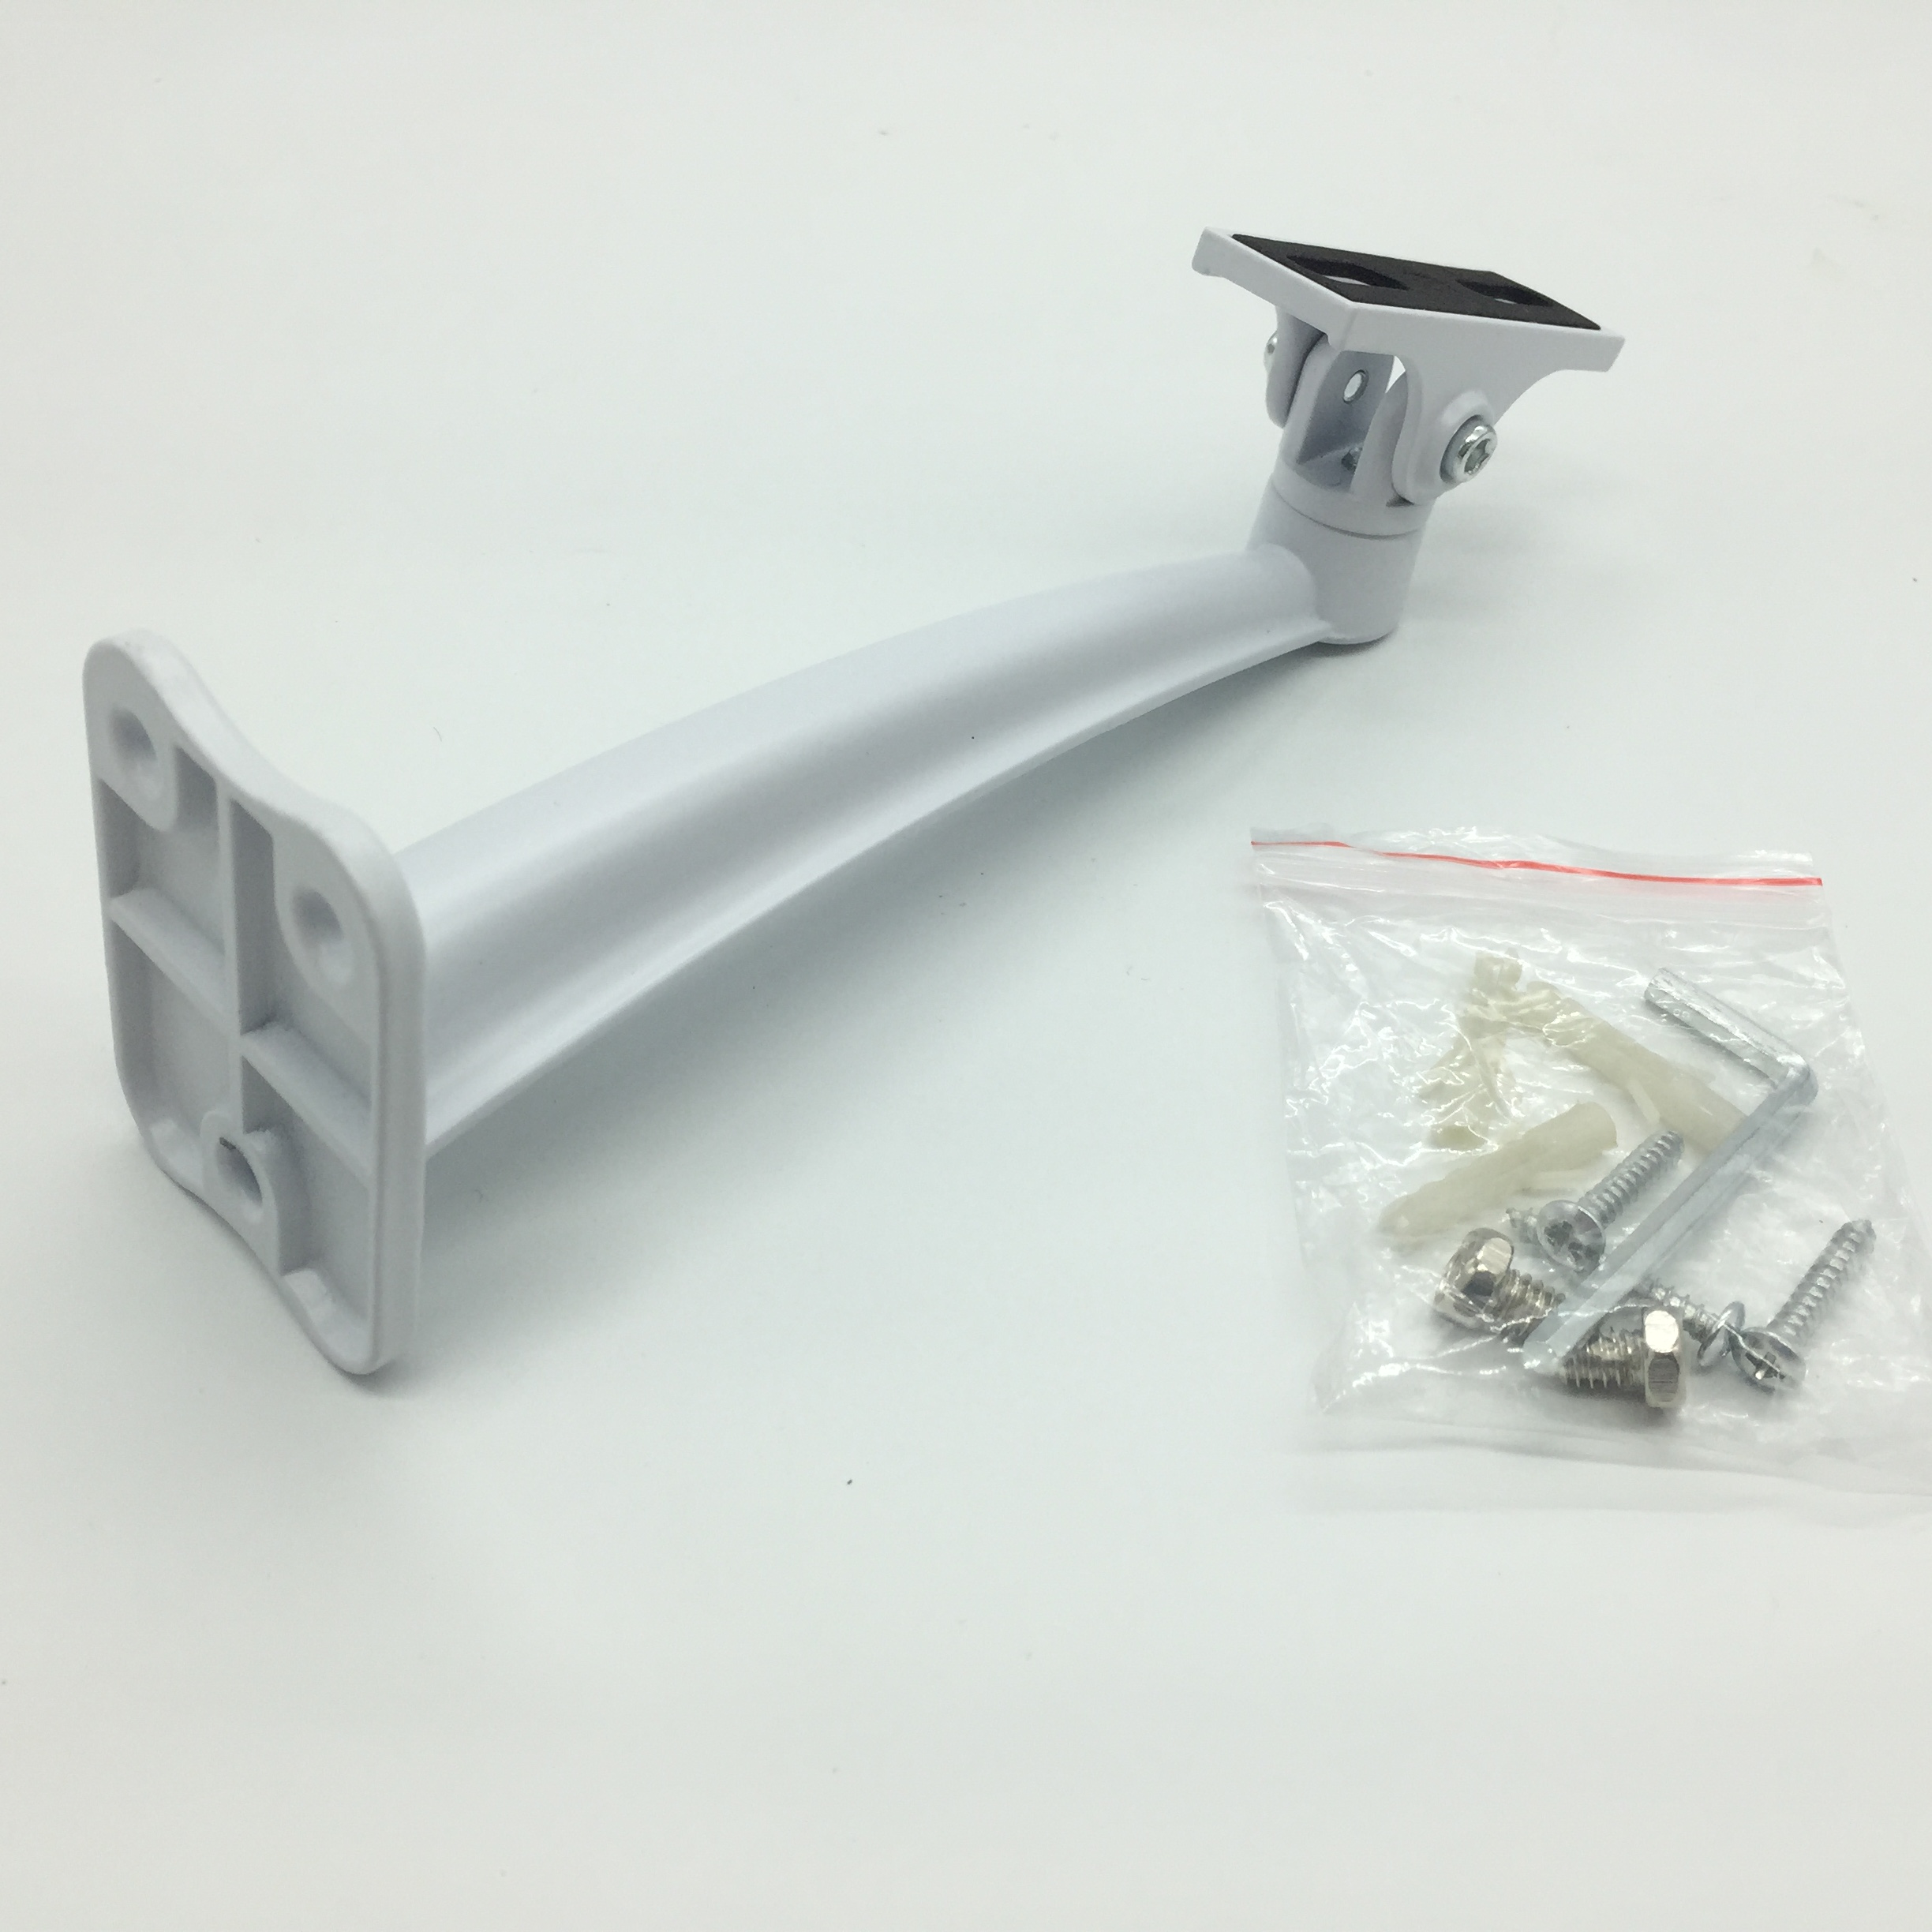 Metal Wall Mount Stand Bracket Rotating Holder For Bullet CCTV Security Camera